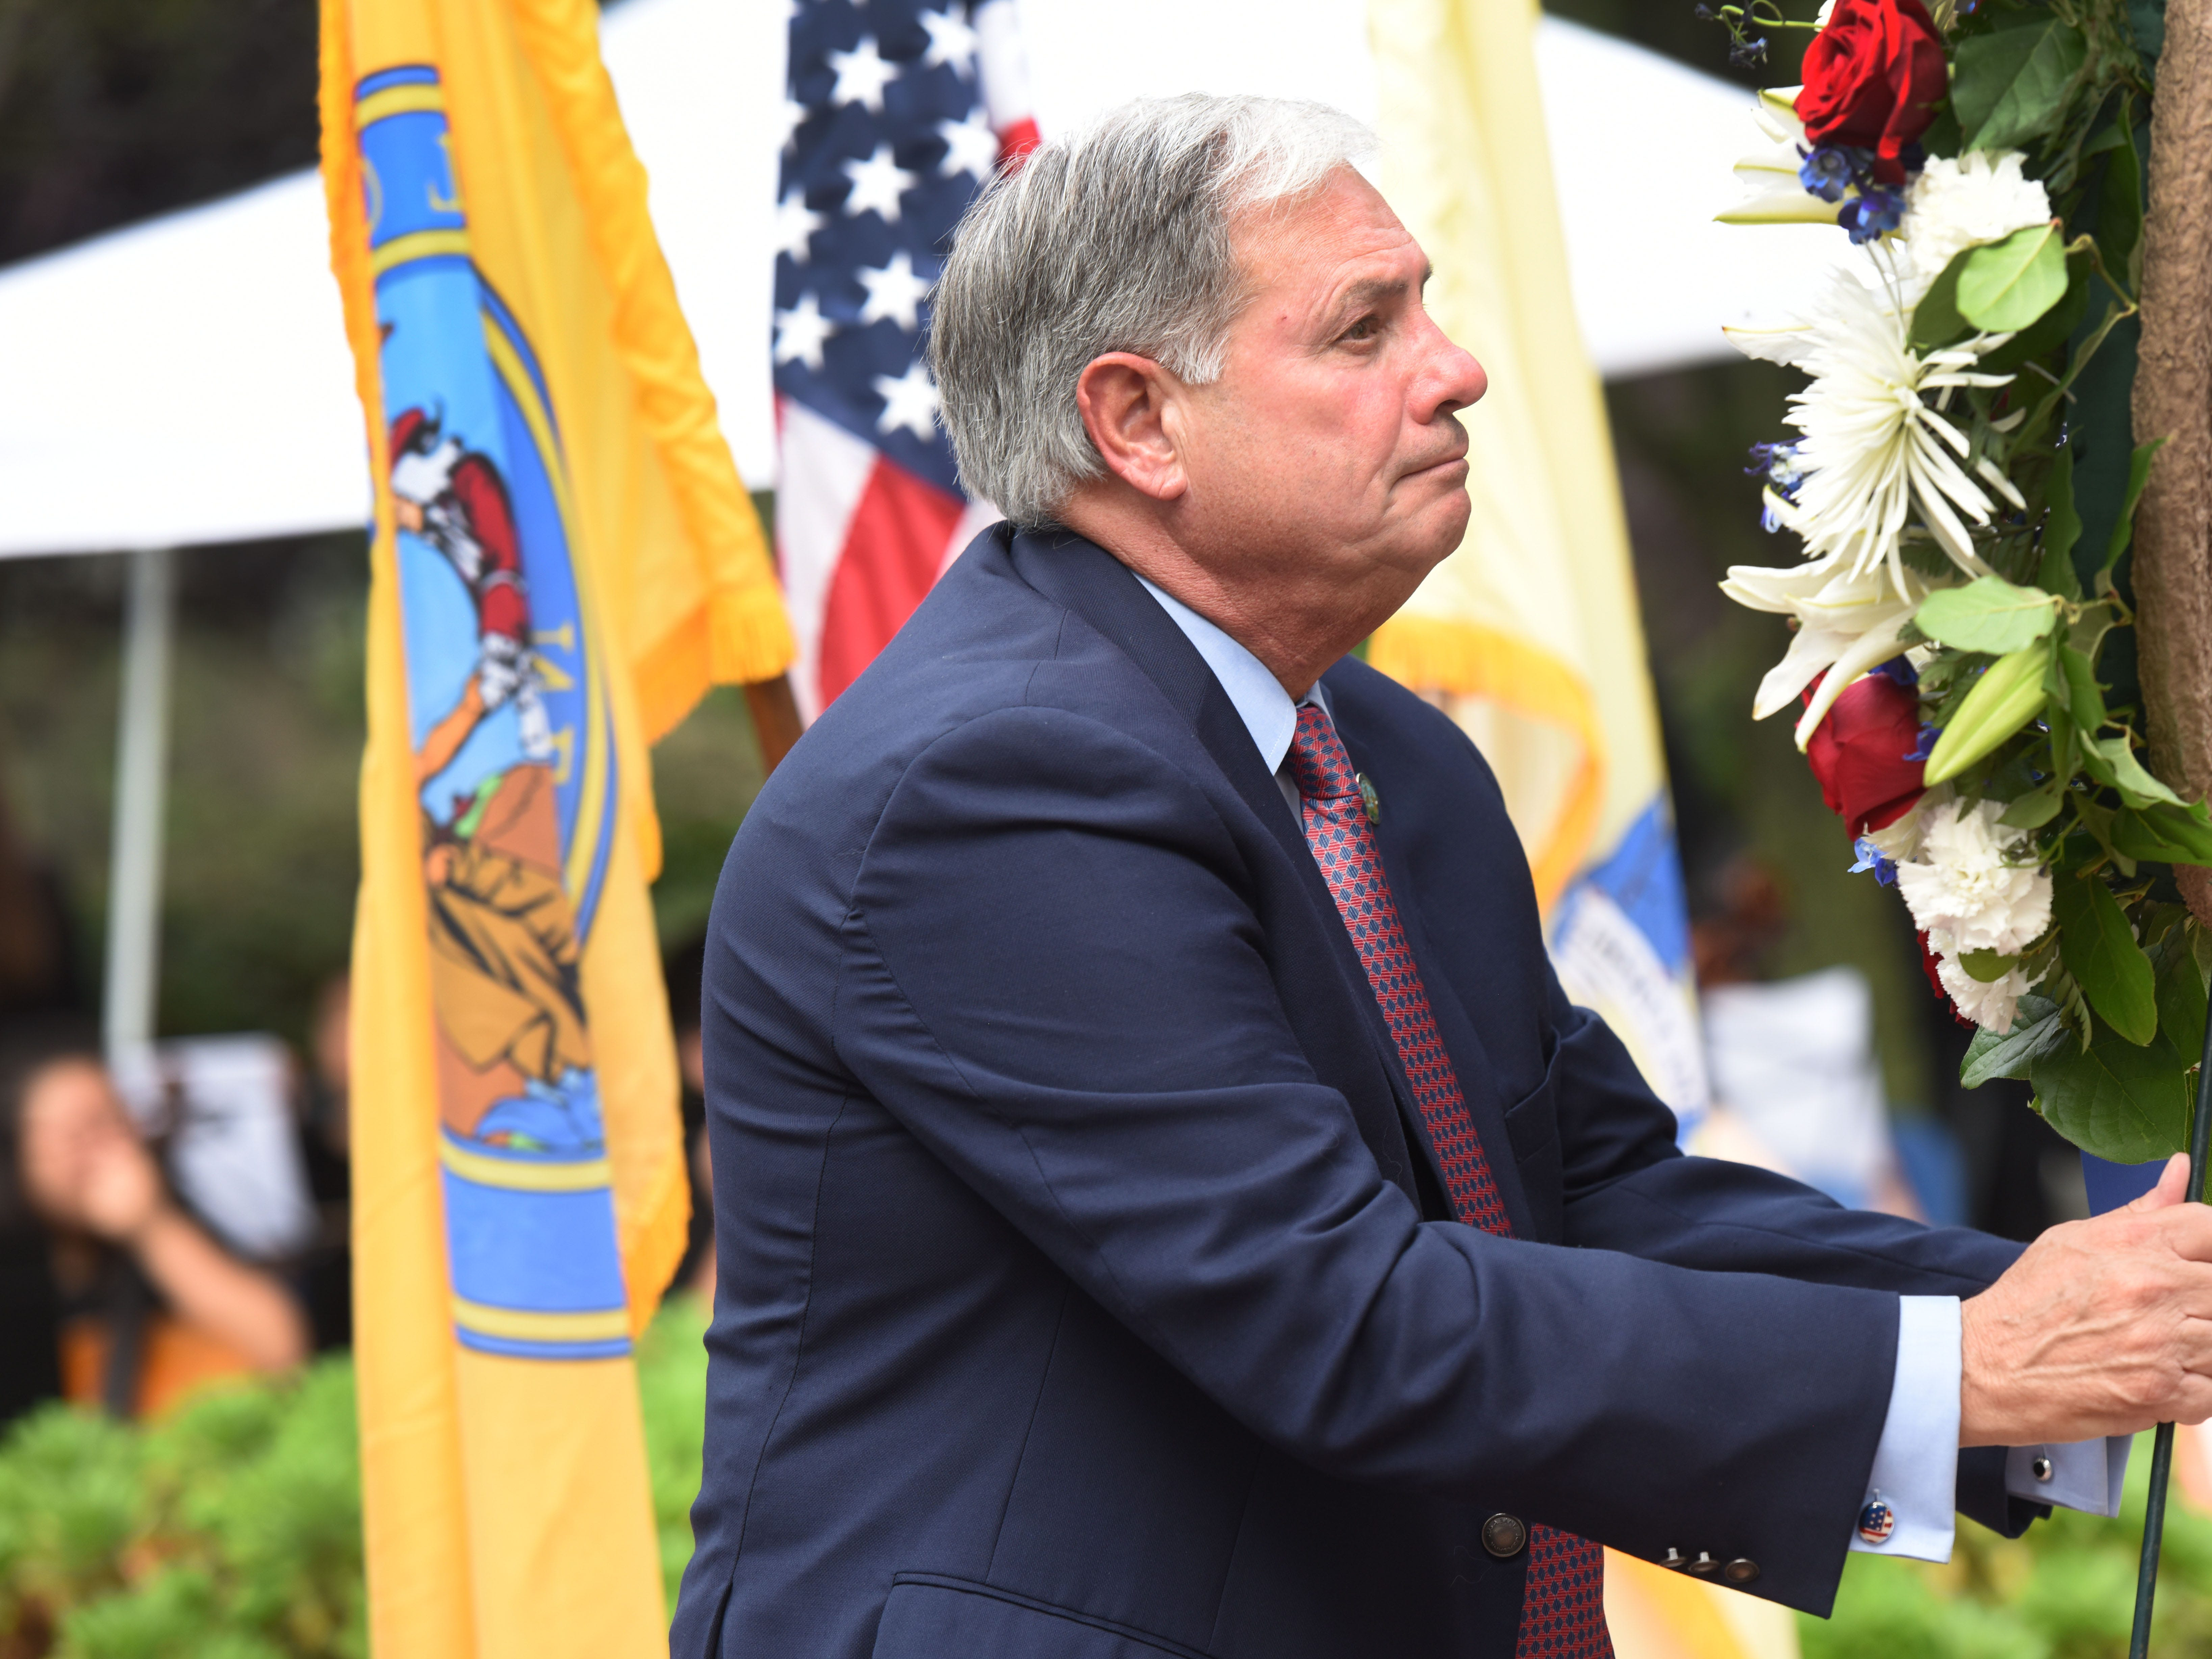 County Executive Jim Tedesco lays a wreath during the Bergen County 9/11 memorial ceremony in Overpeck Park.